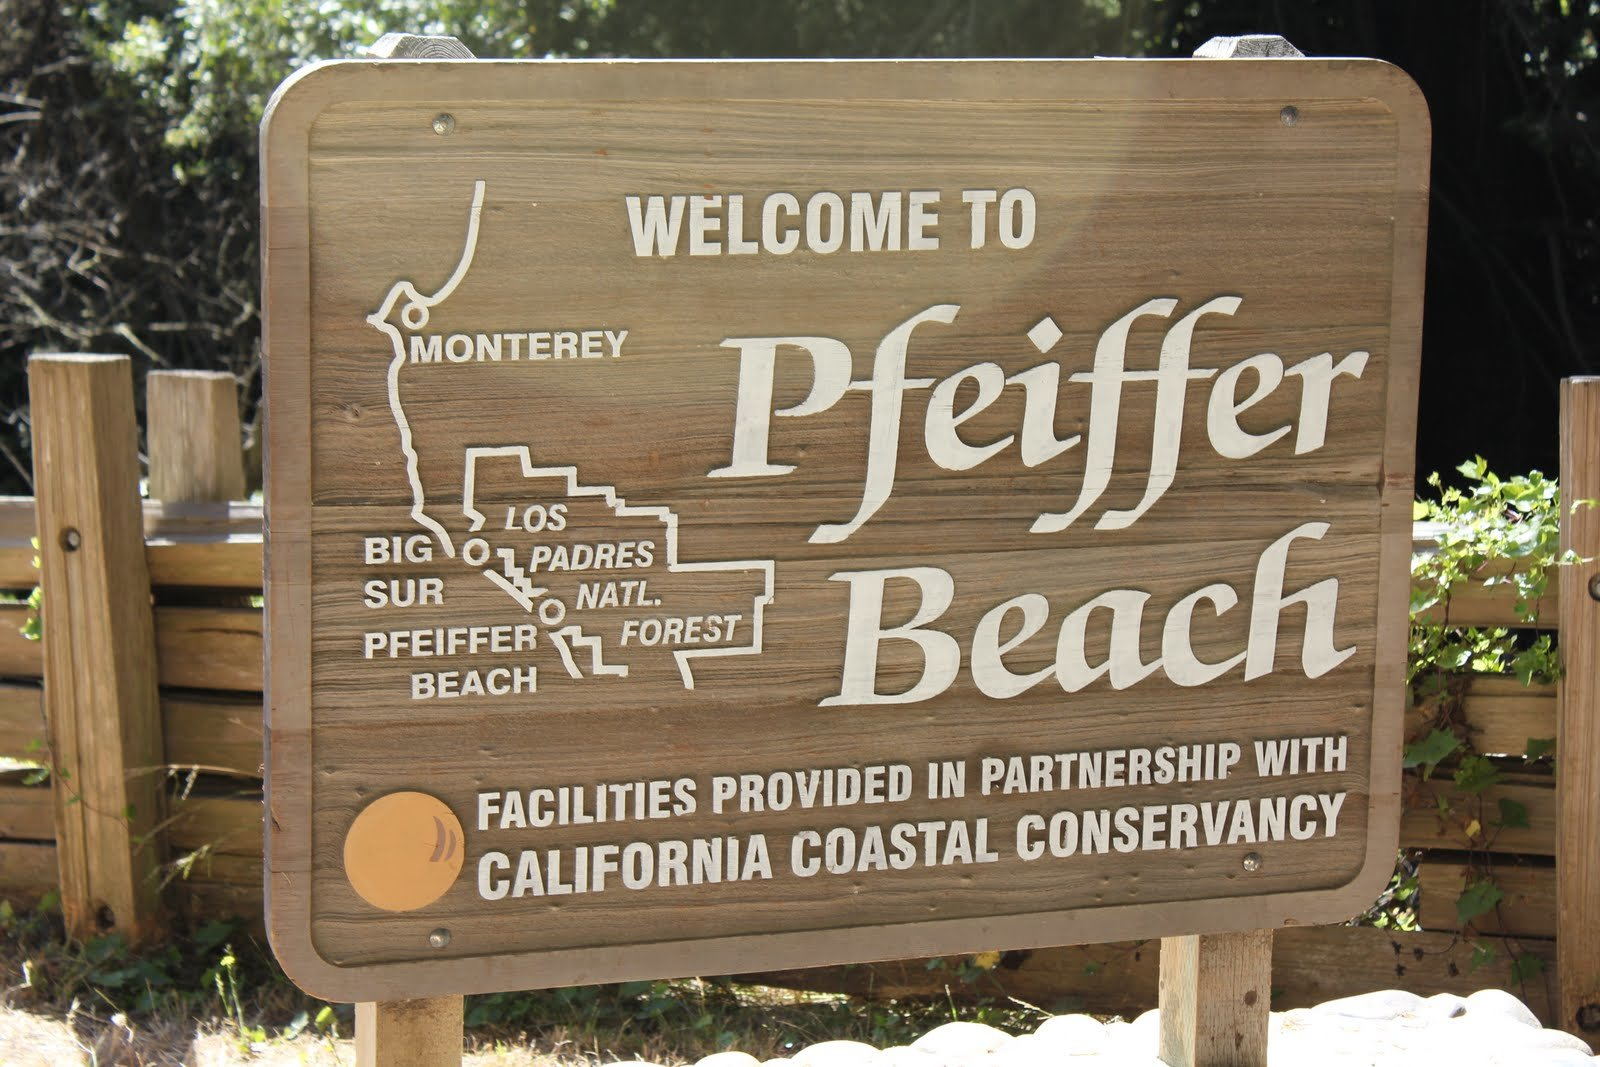 pfeiffer beach sign pacific coast highway road trip